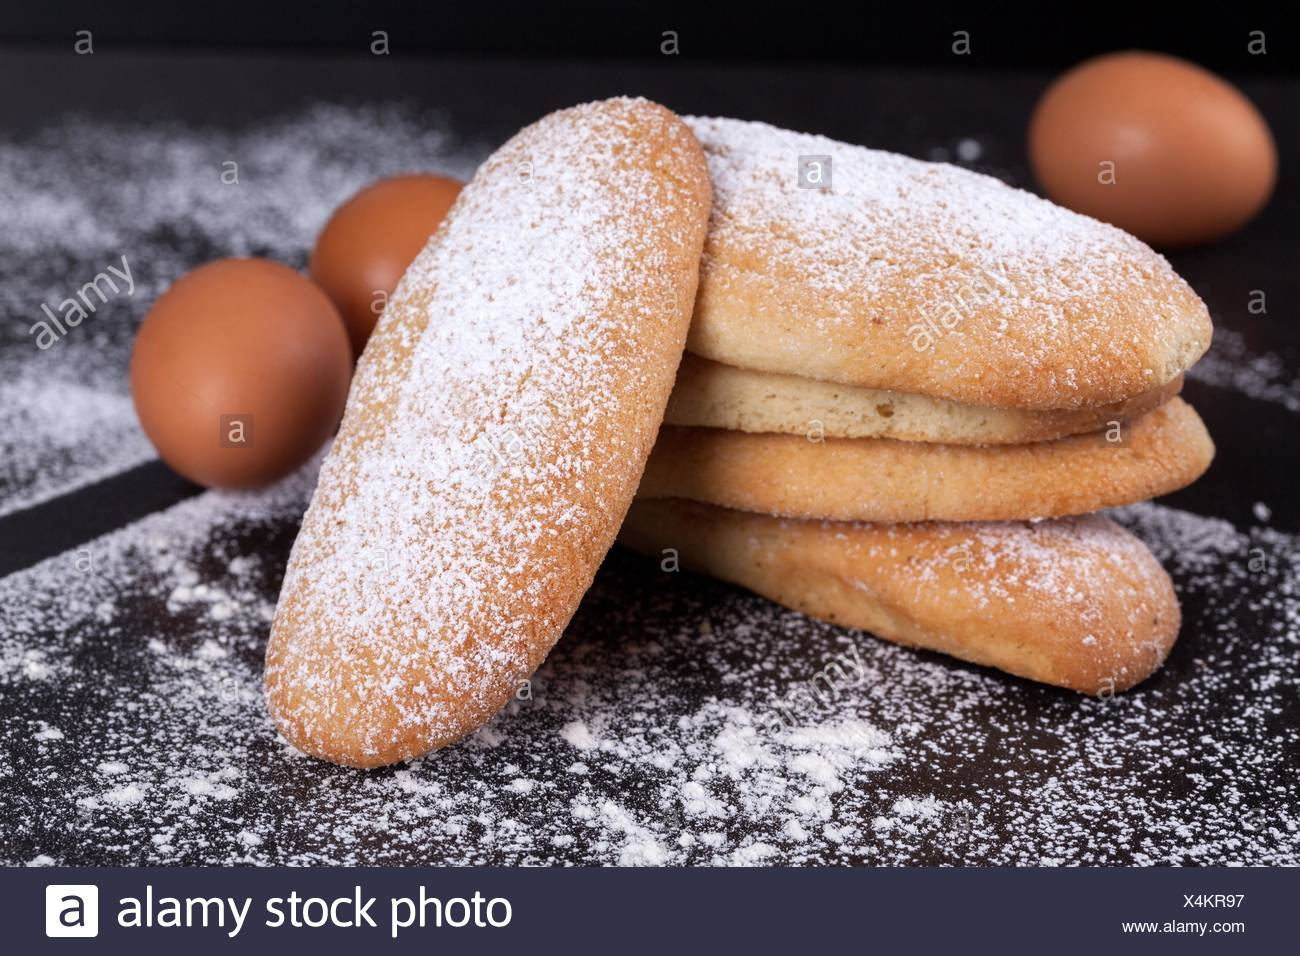 Closeup of leavened savoiardi biscuits sprinkled with icing sugar. - Stock Image